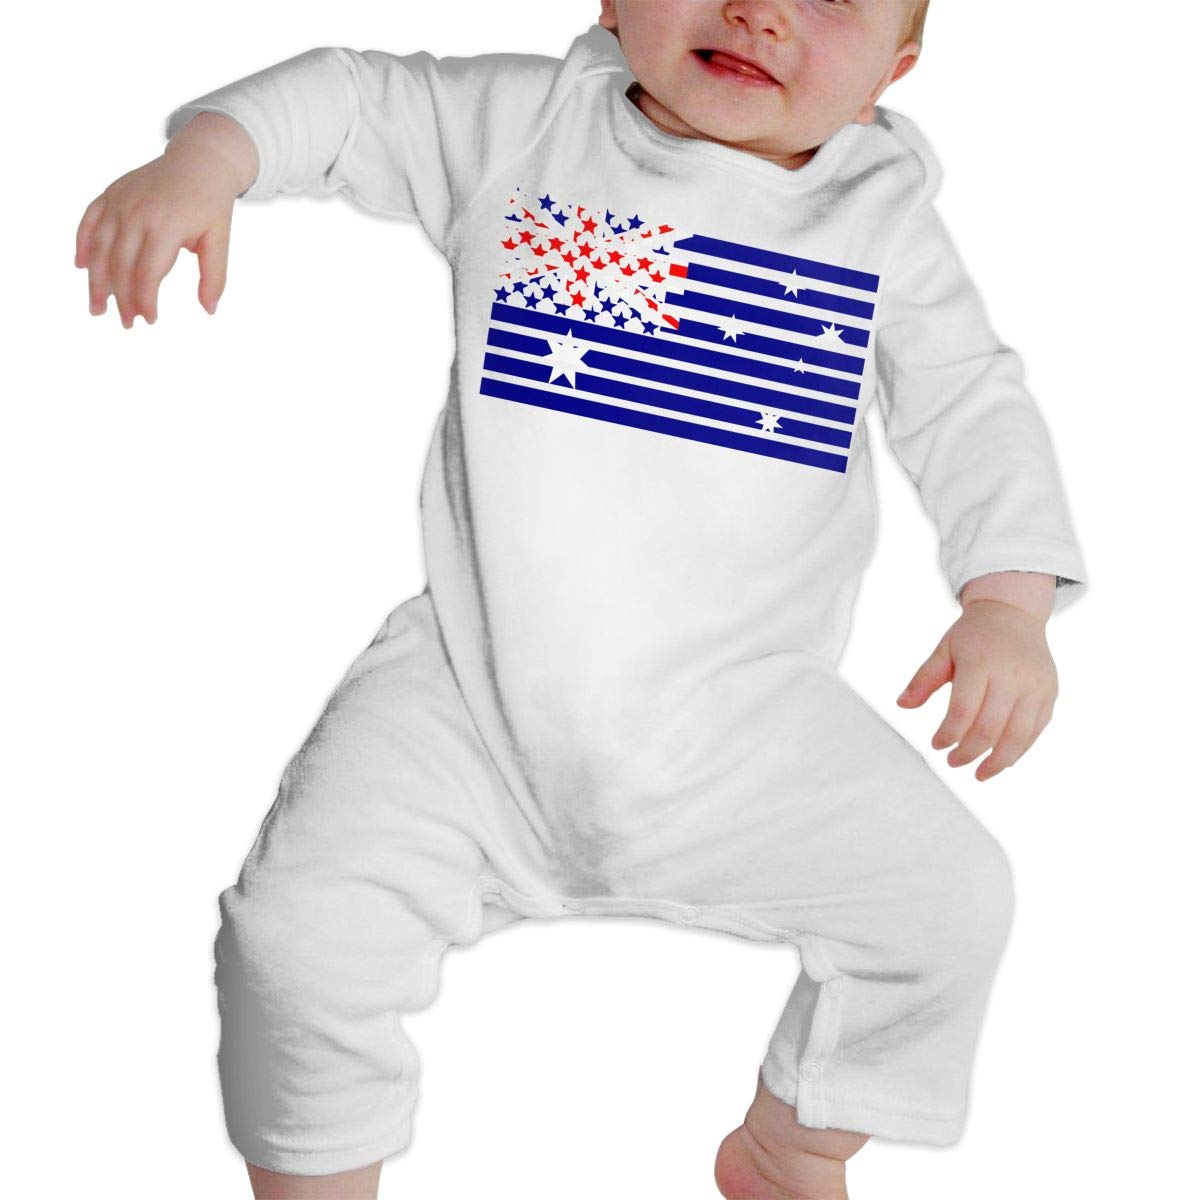 A1BY-5US Infant Baby Girls Cotton Long Sleeve American Australian Flag Climb Romper One-Piece Romper Clothes